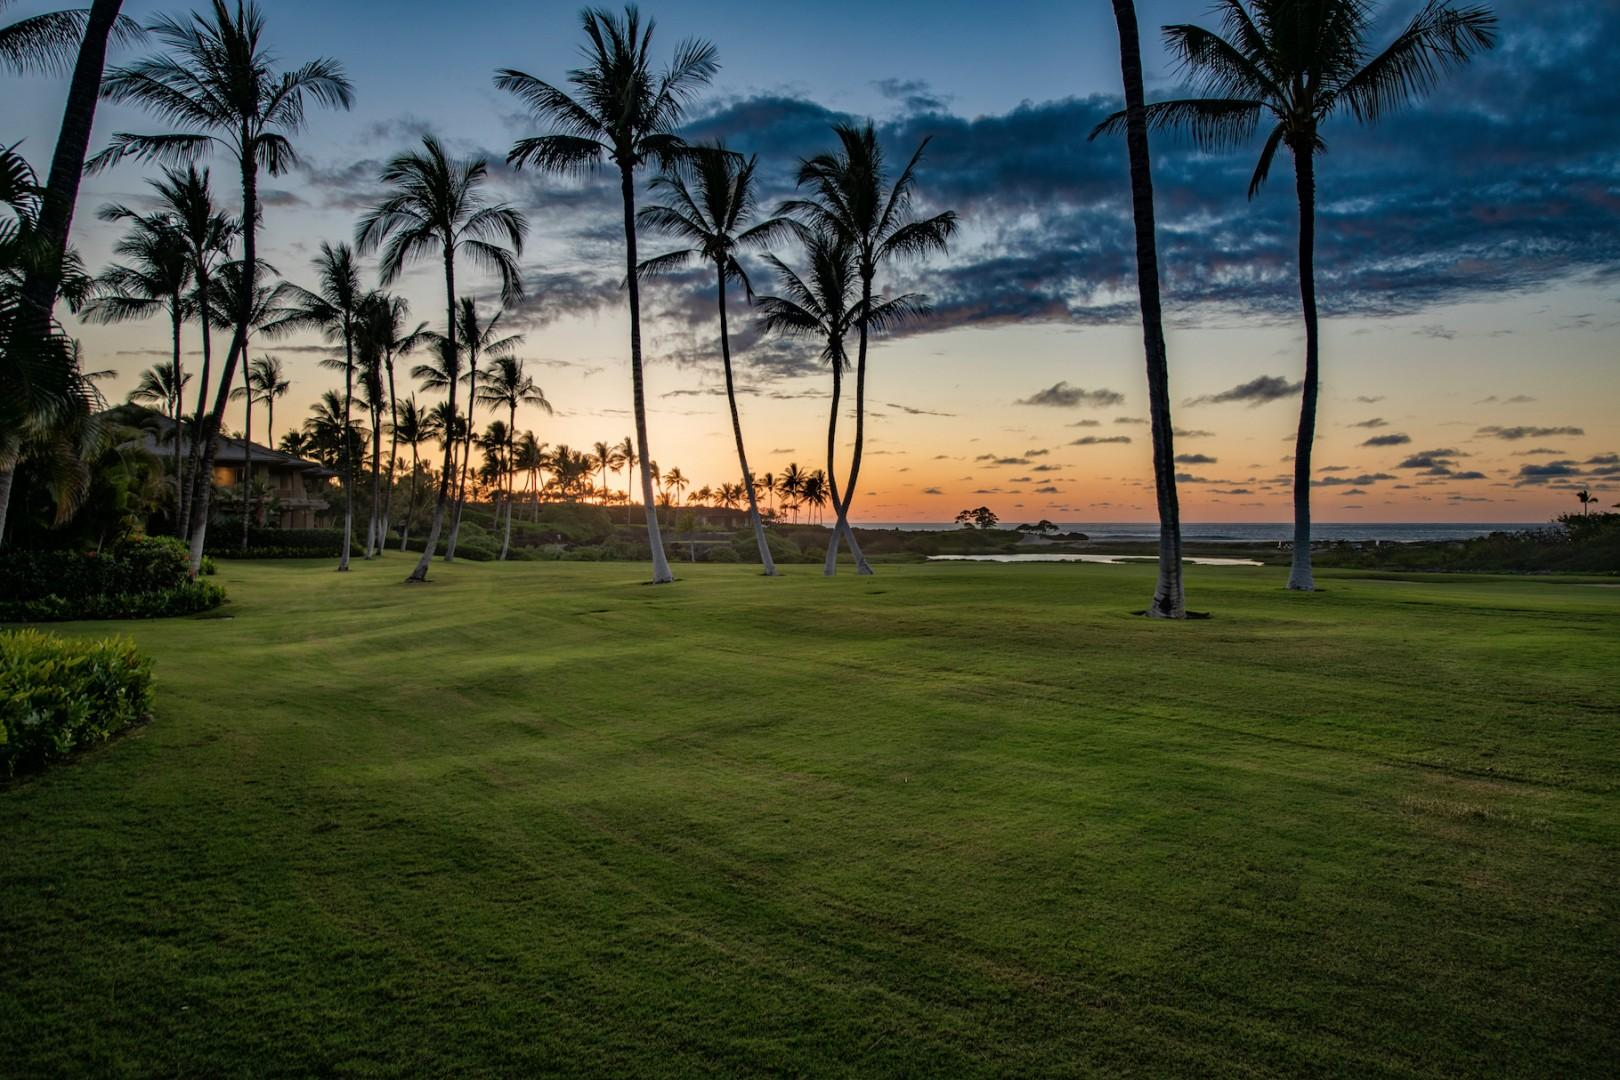 Golf course view from your lanai at sunset.